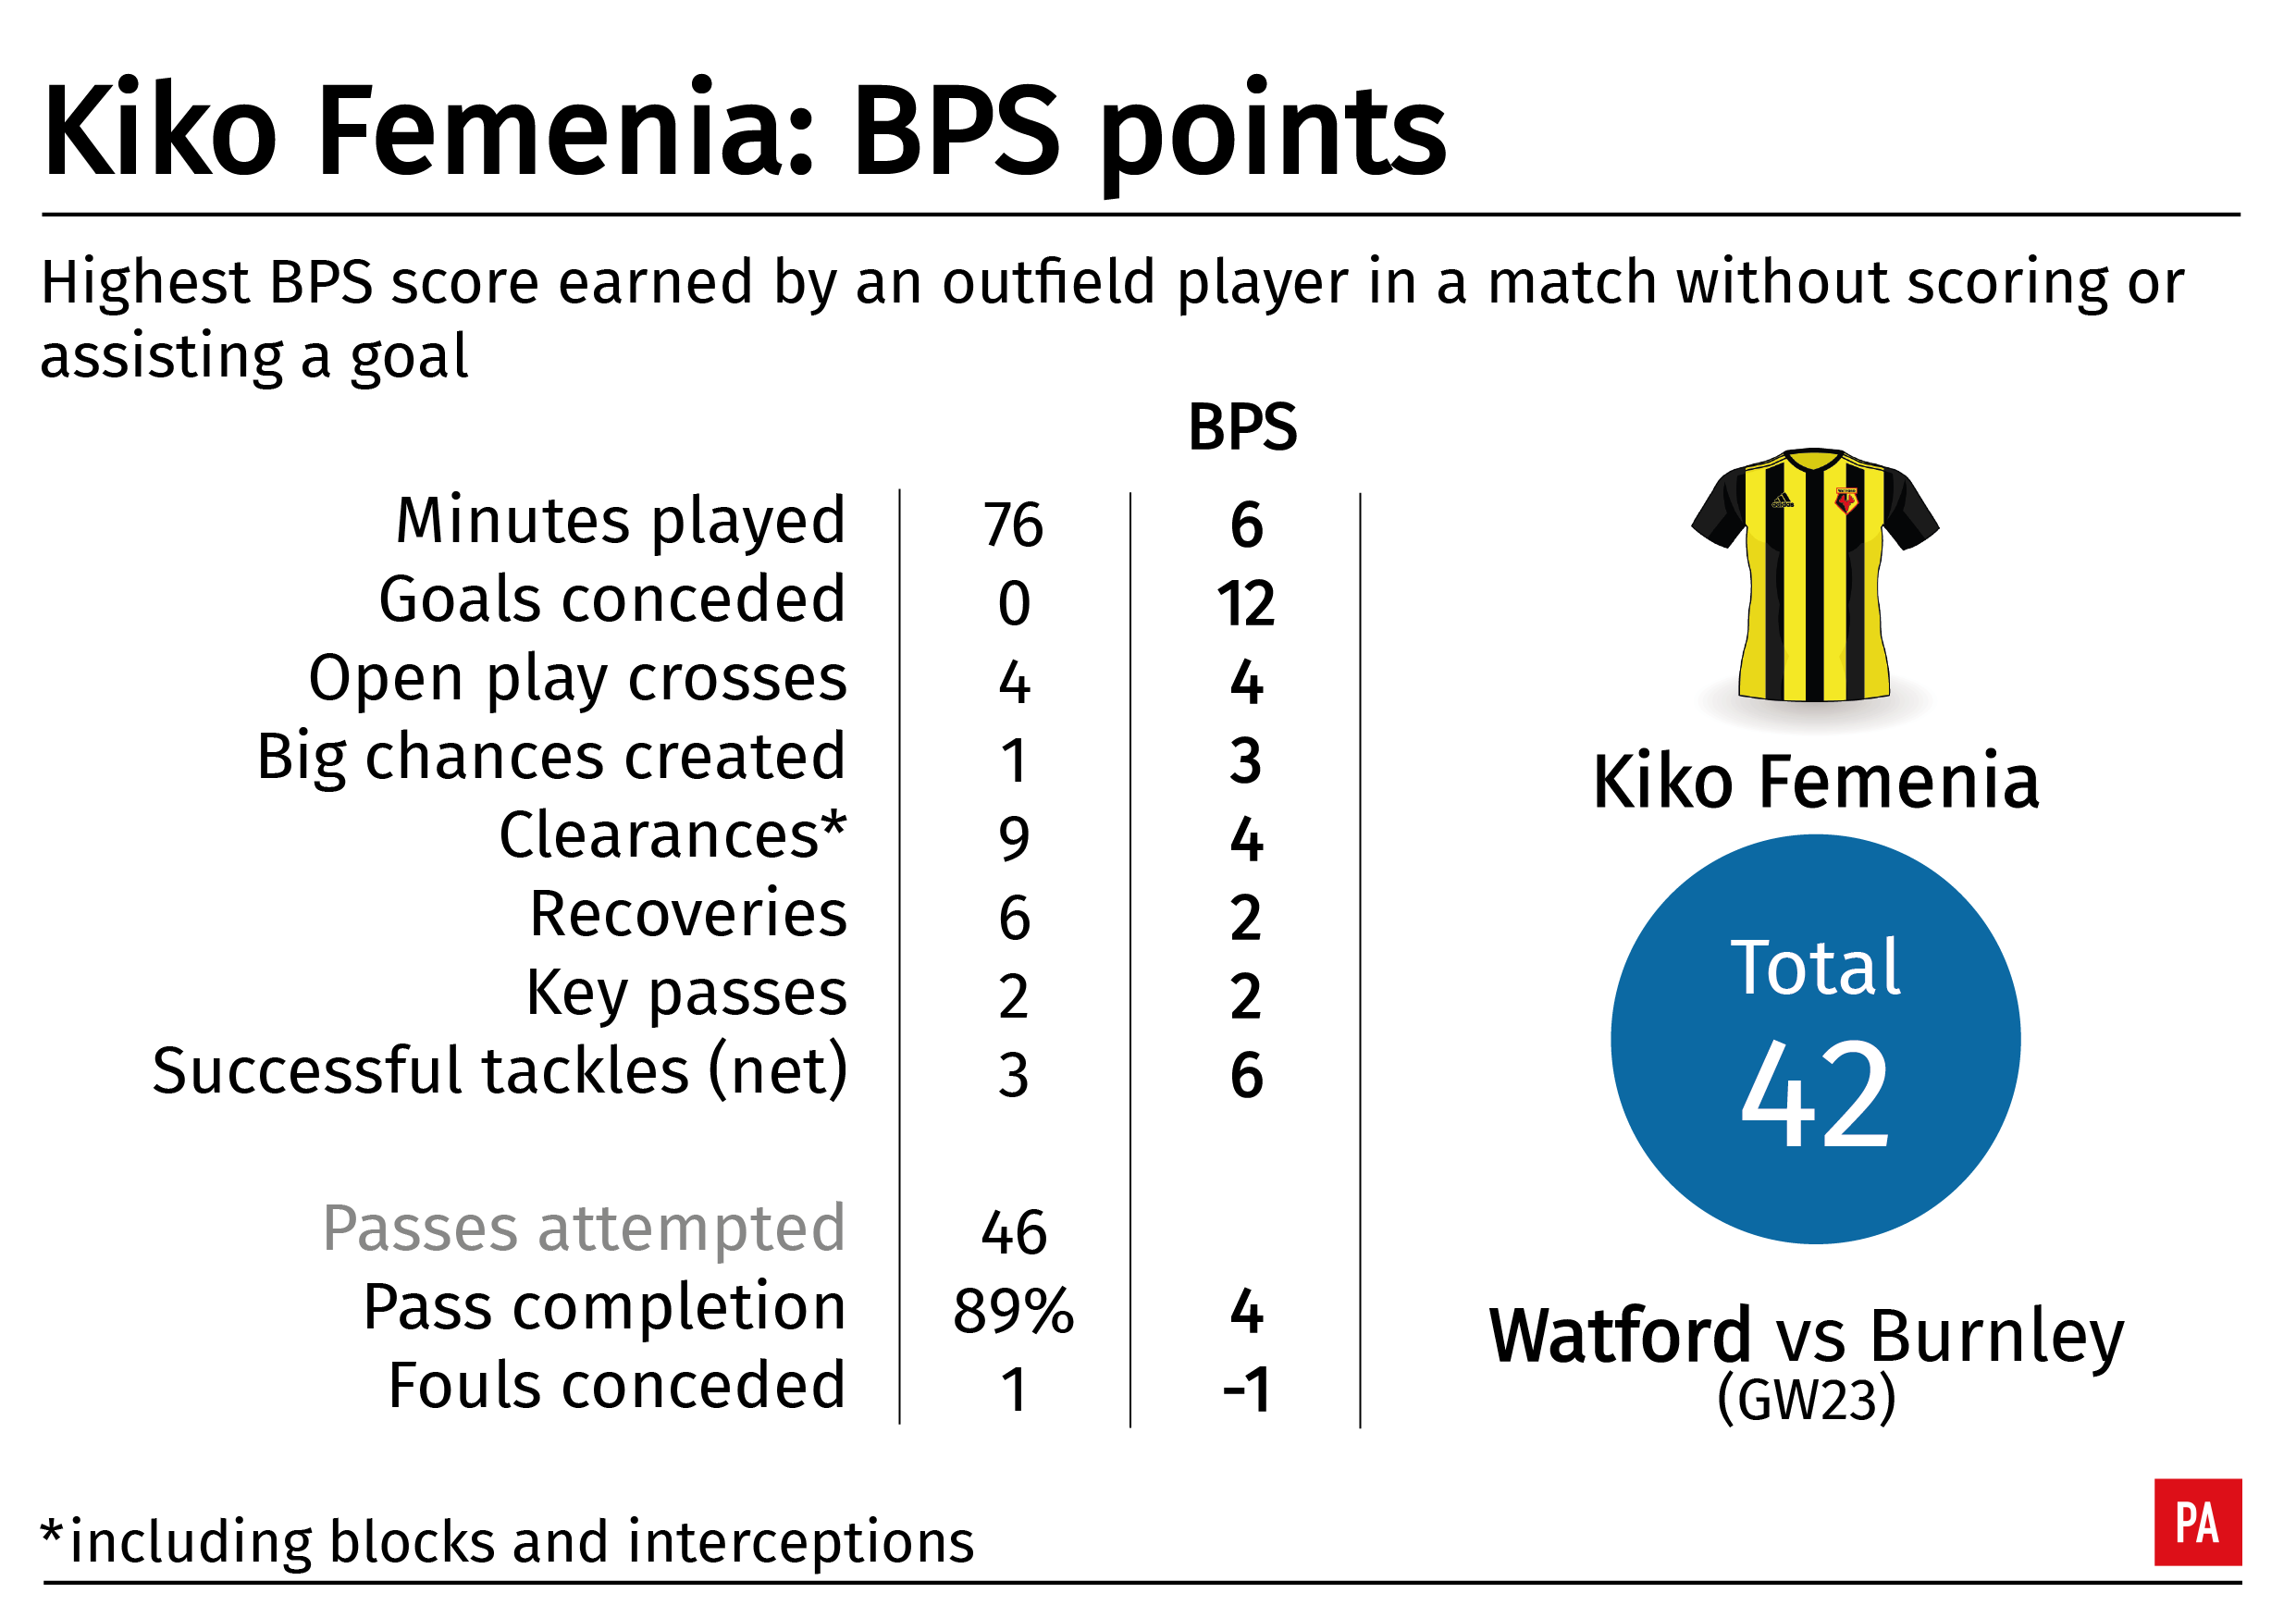 A graphic showing Watford defender Kiko Femenia's BPS score during a game against Burnley